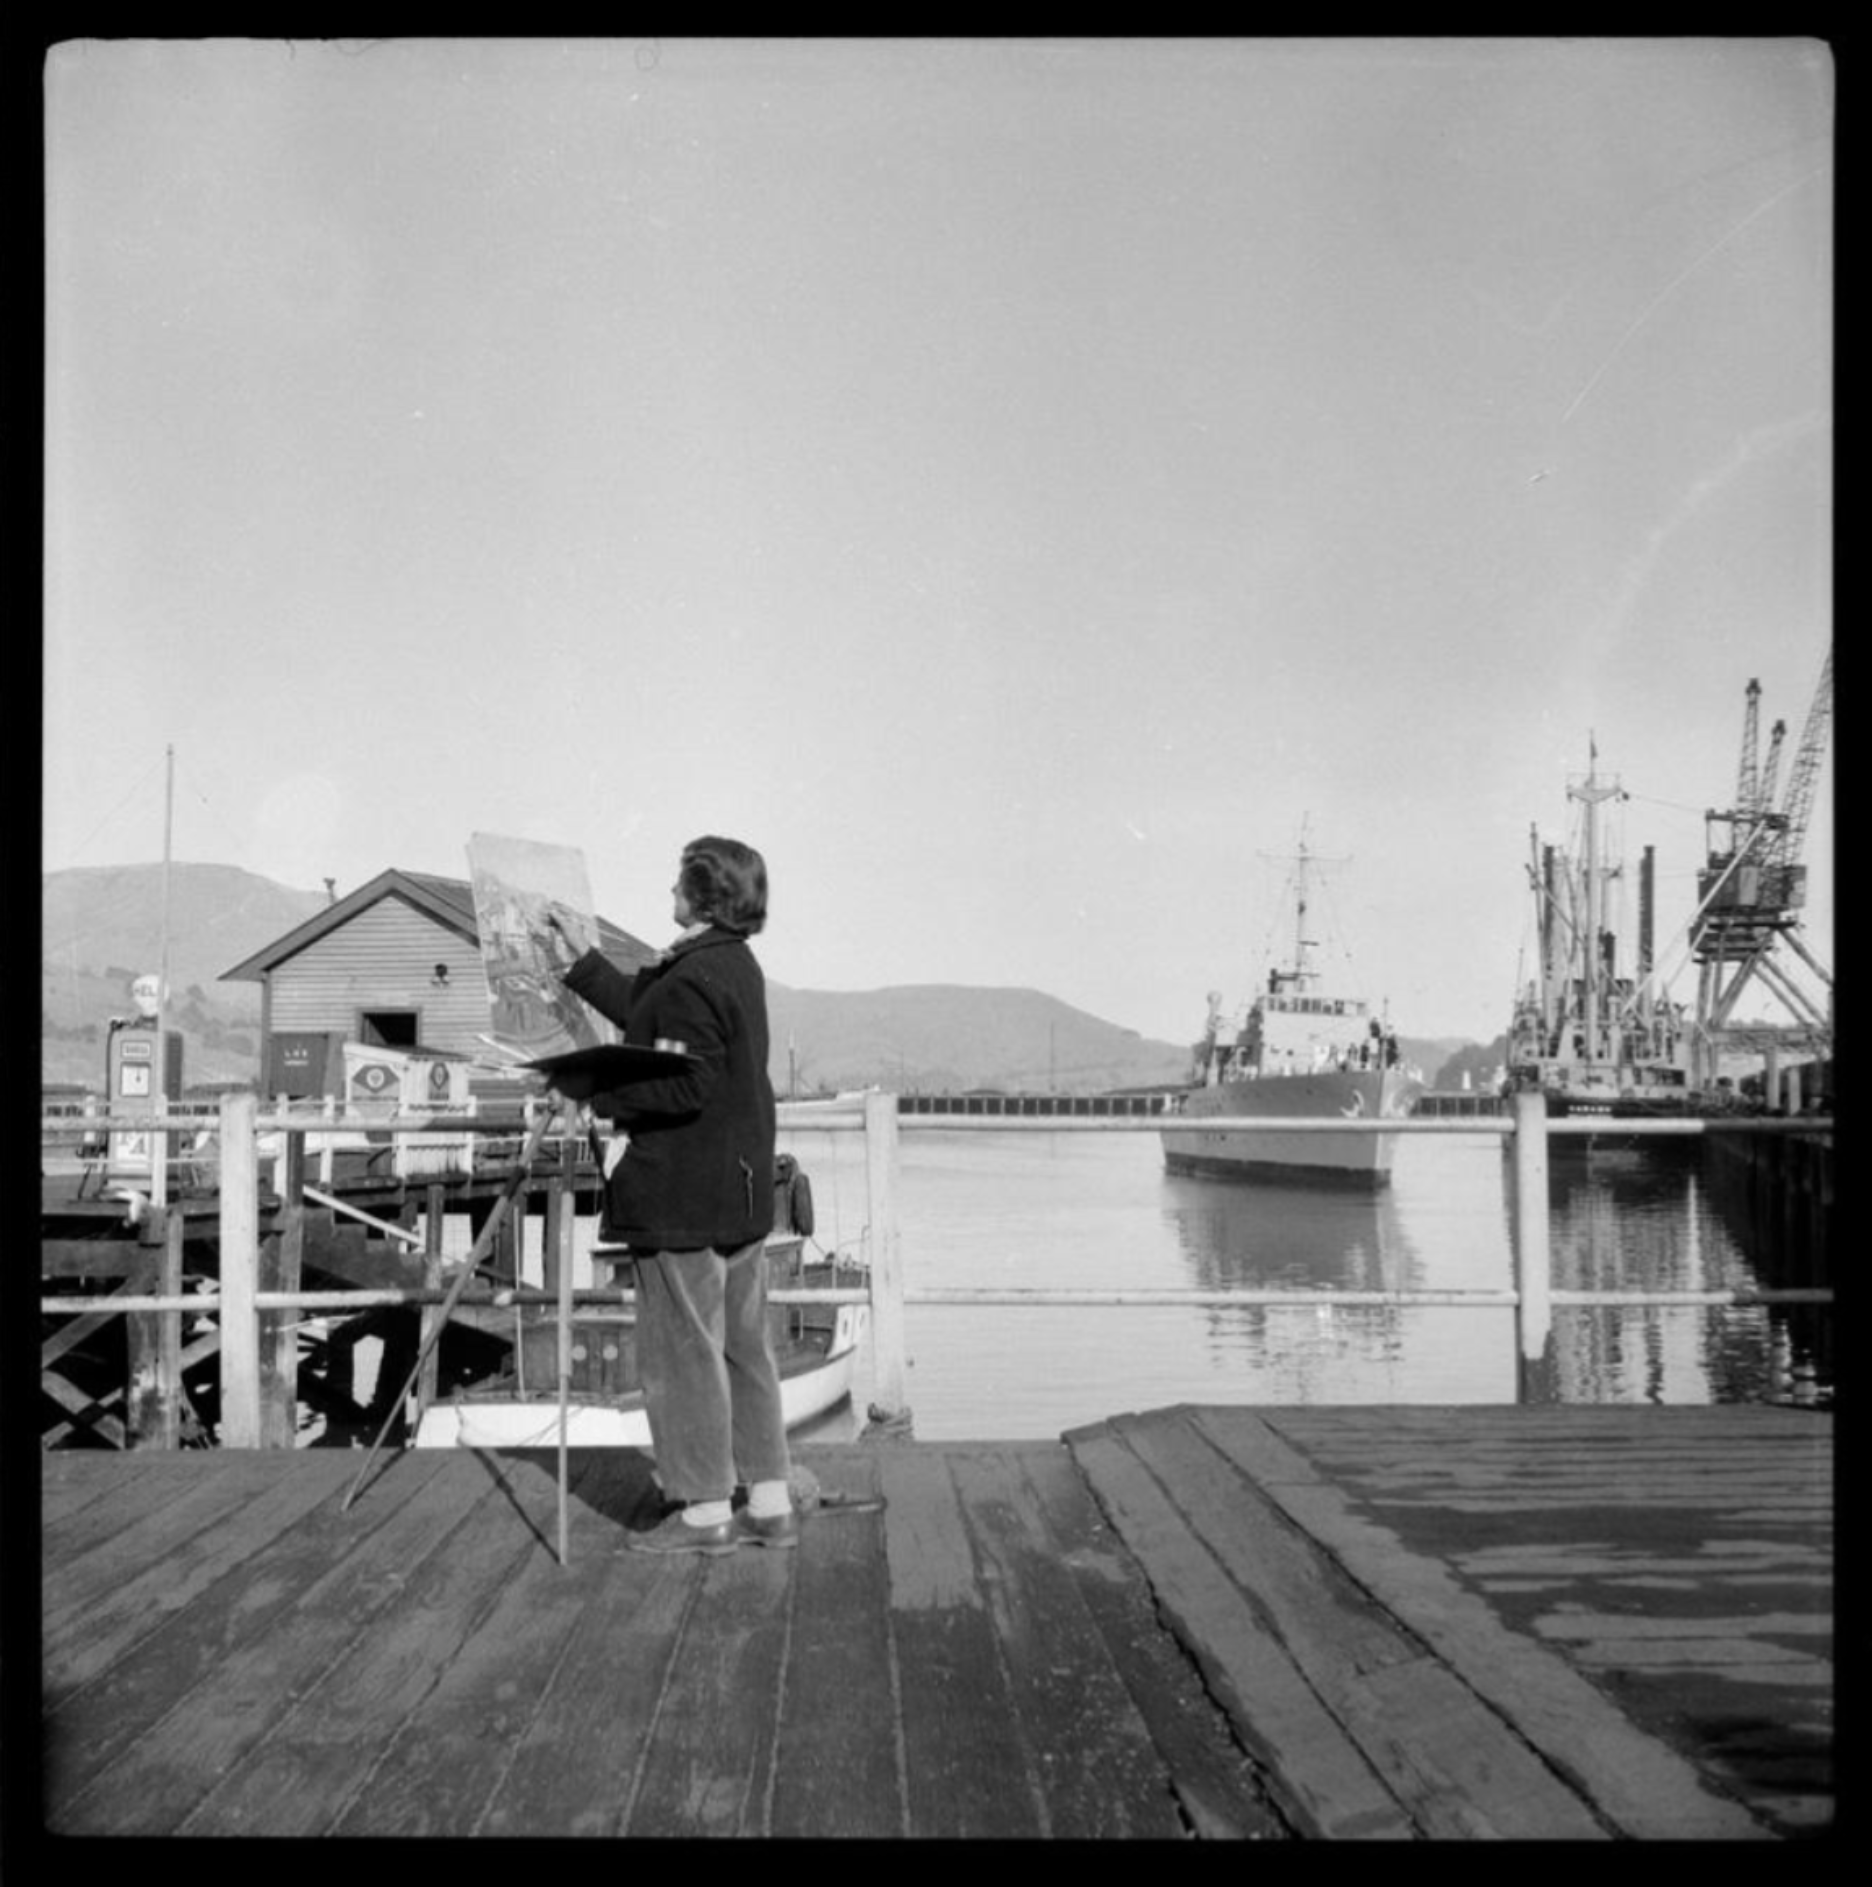 Woman painting on wharf at Lyttelton - 6536.1